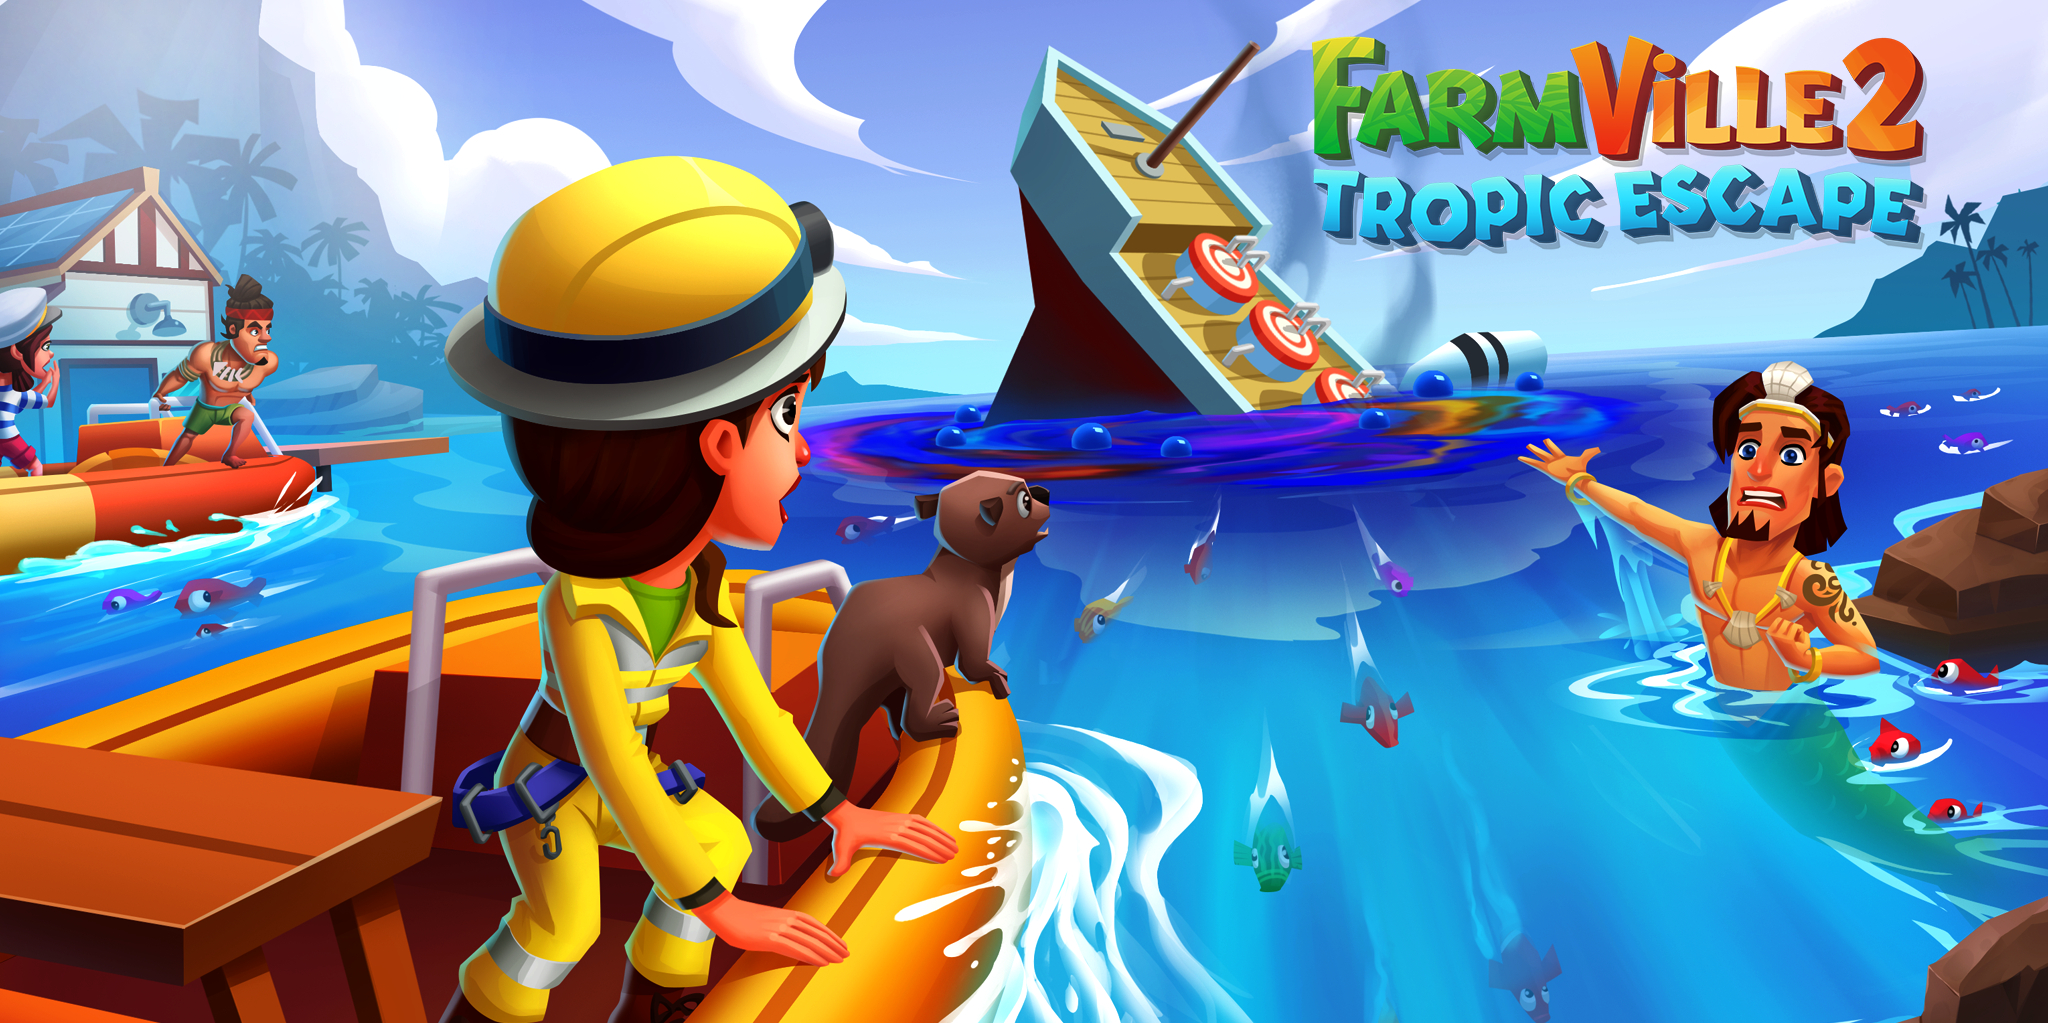 FarmVille 2: Tropic Escape's Earth Day event sees you helping a merman clean up a major oil spill